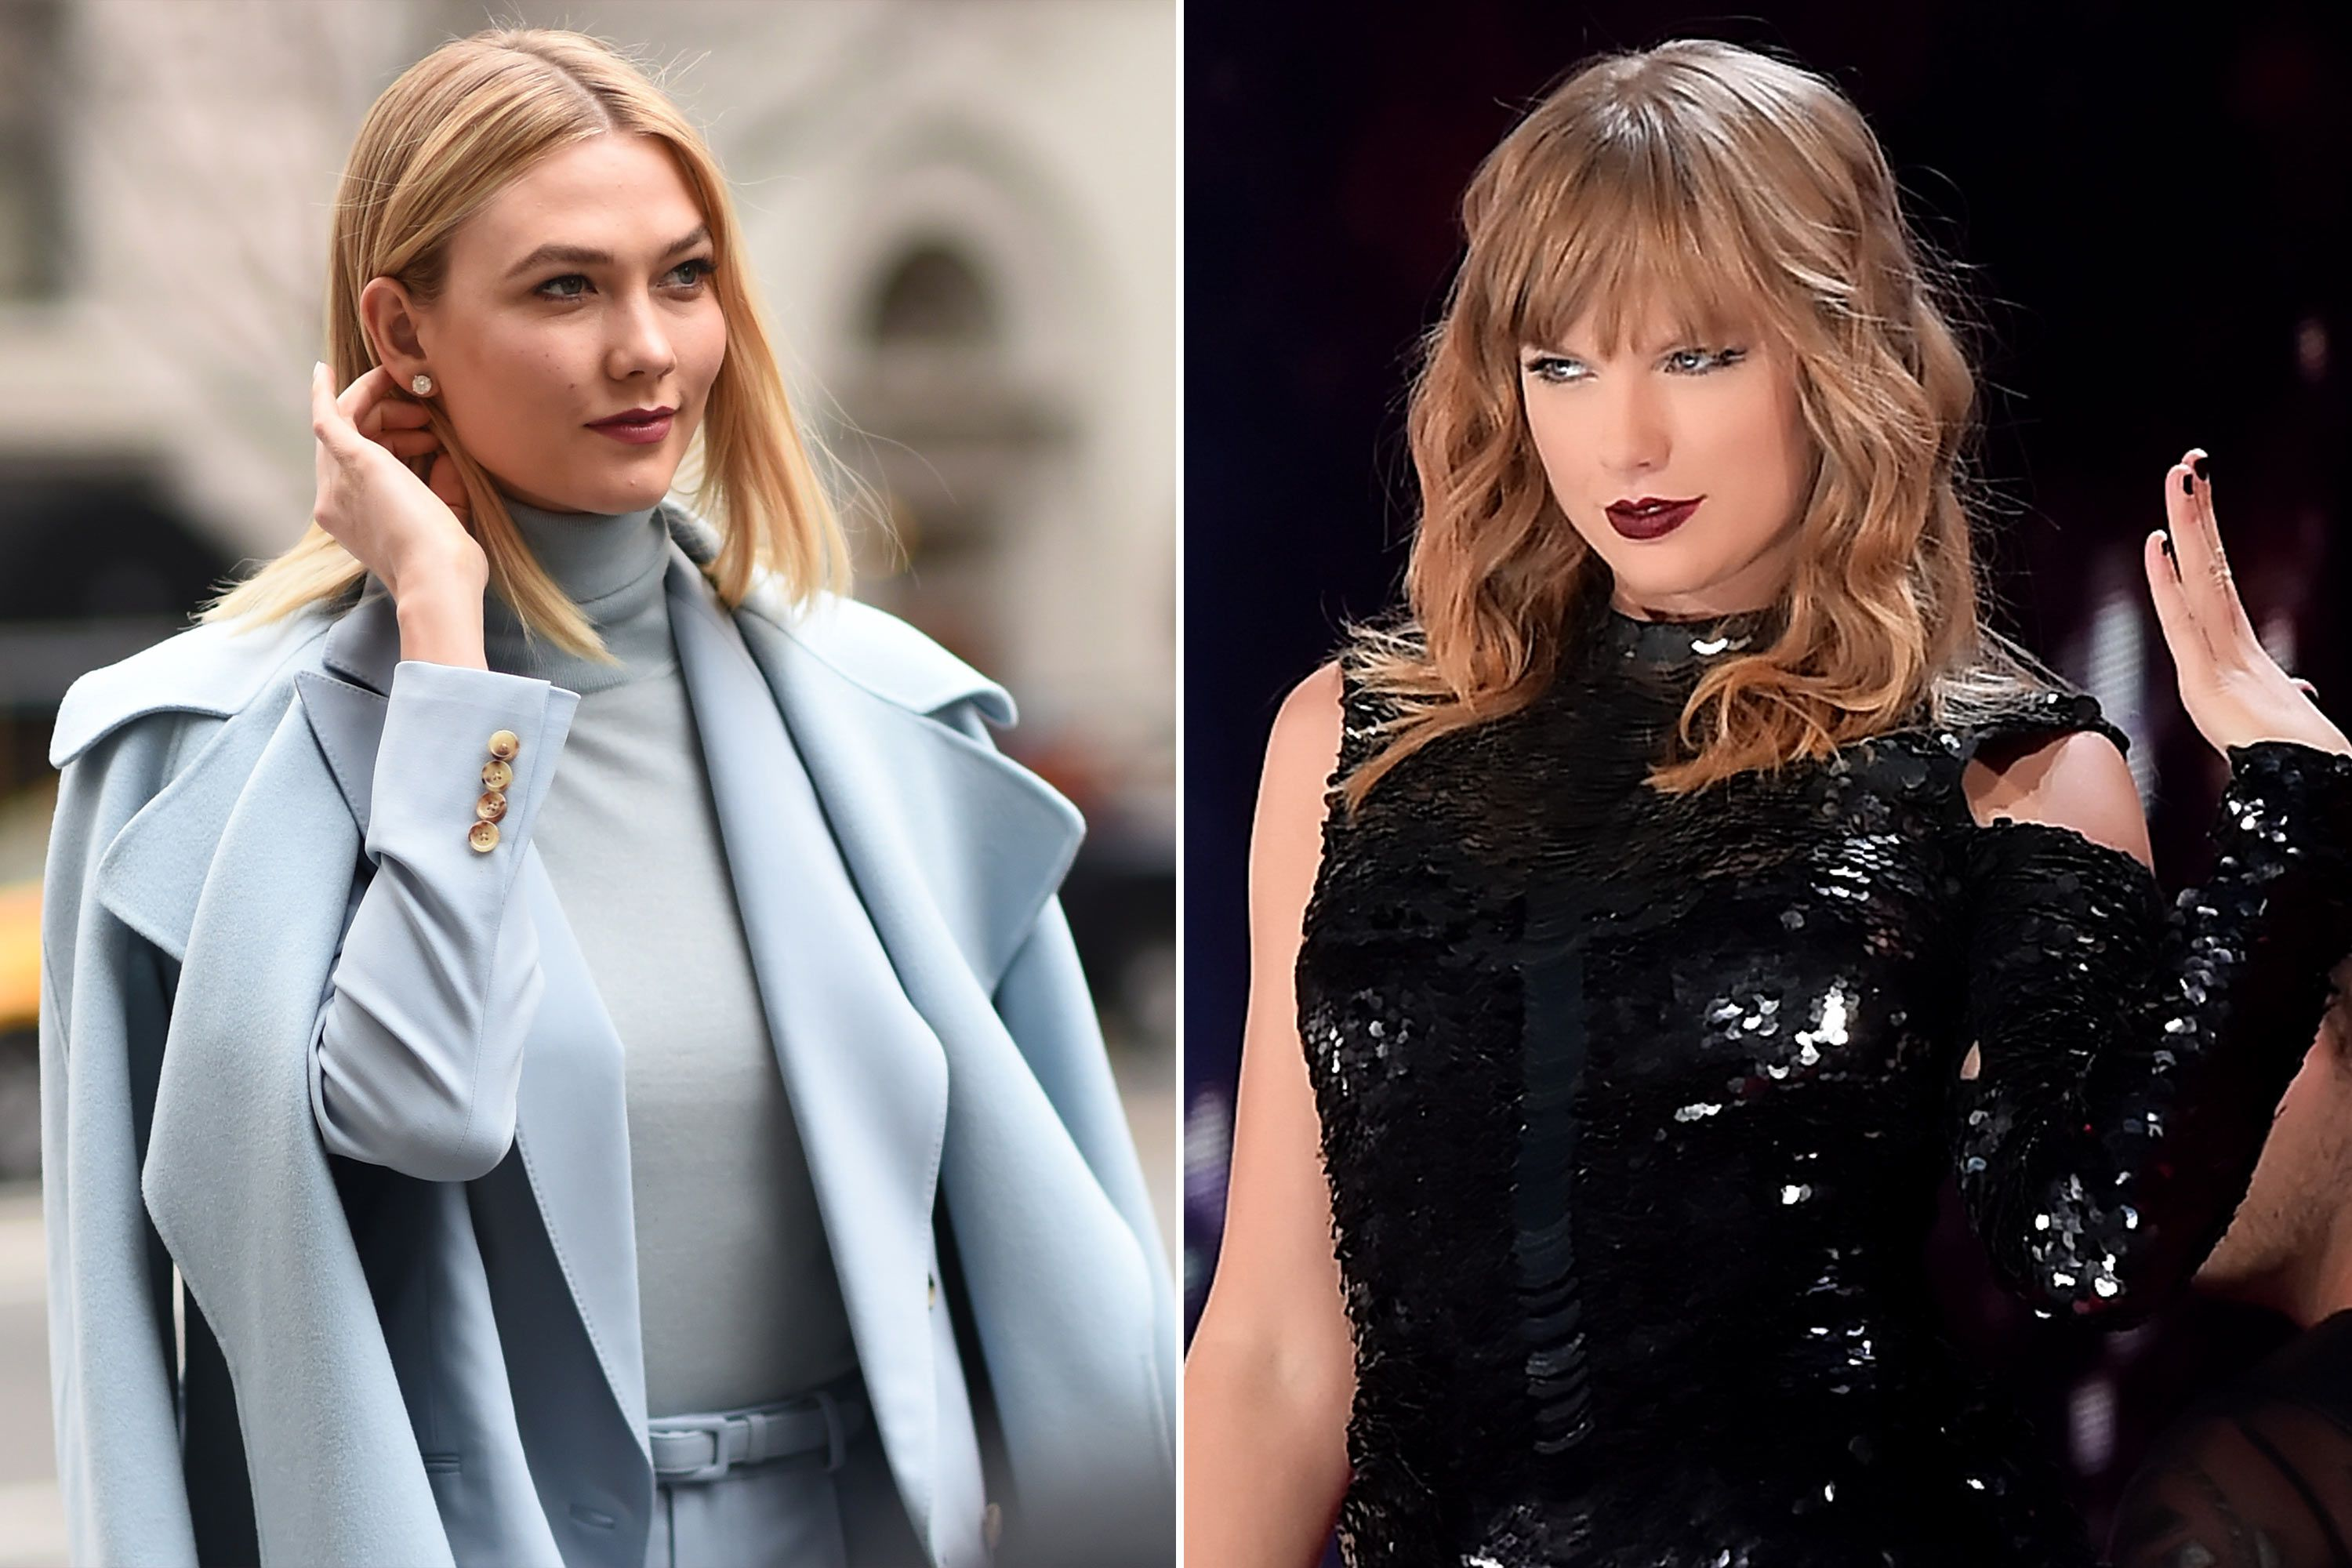 Taylor Swift fans think it's time to go is about Karlie Kloss